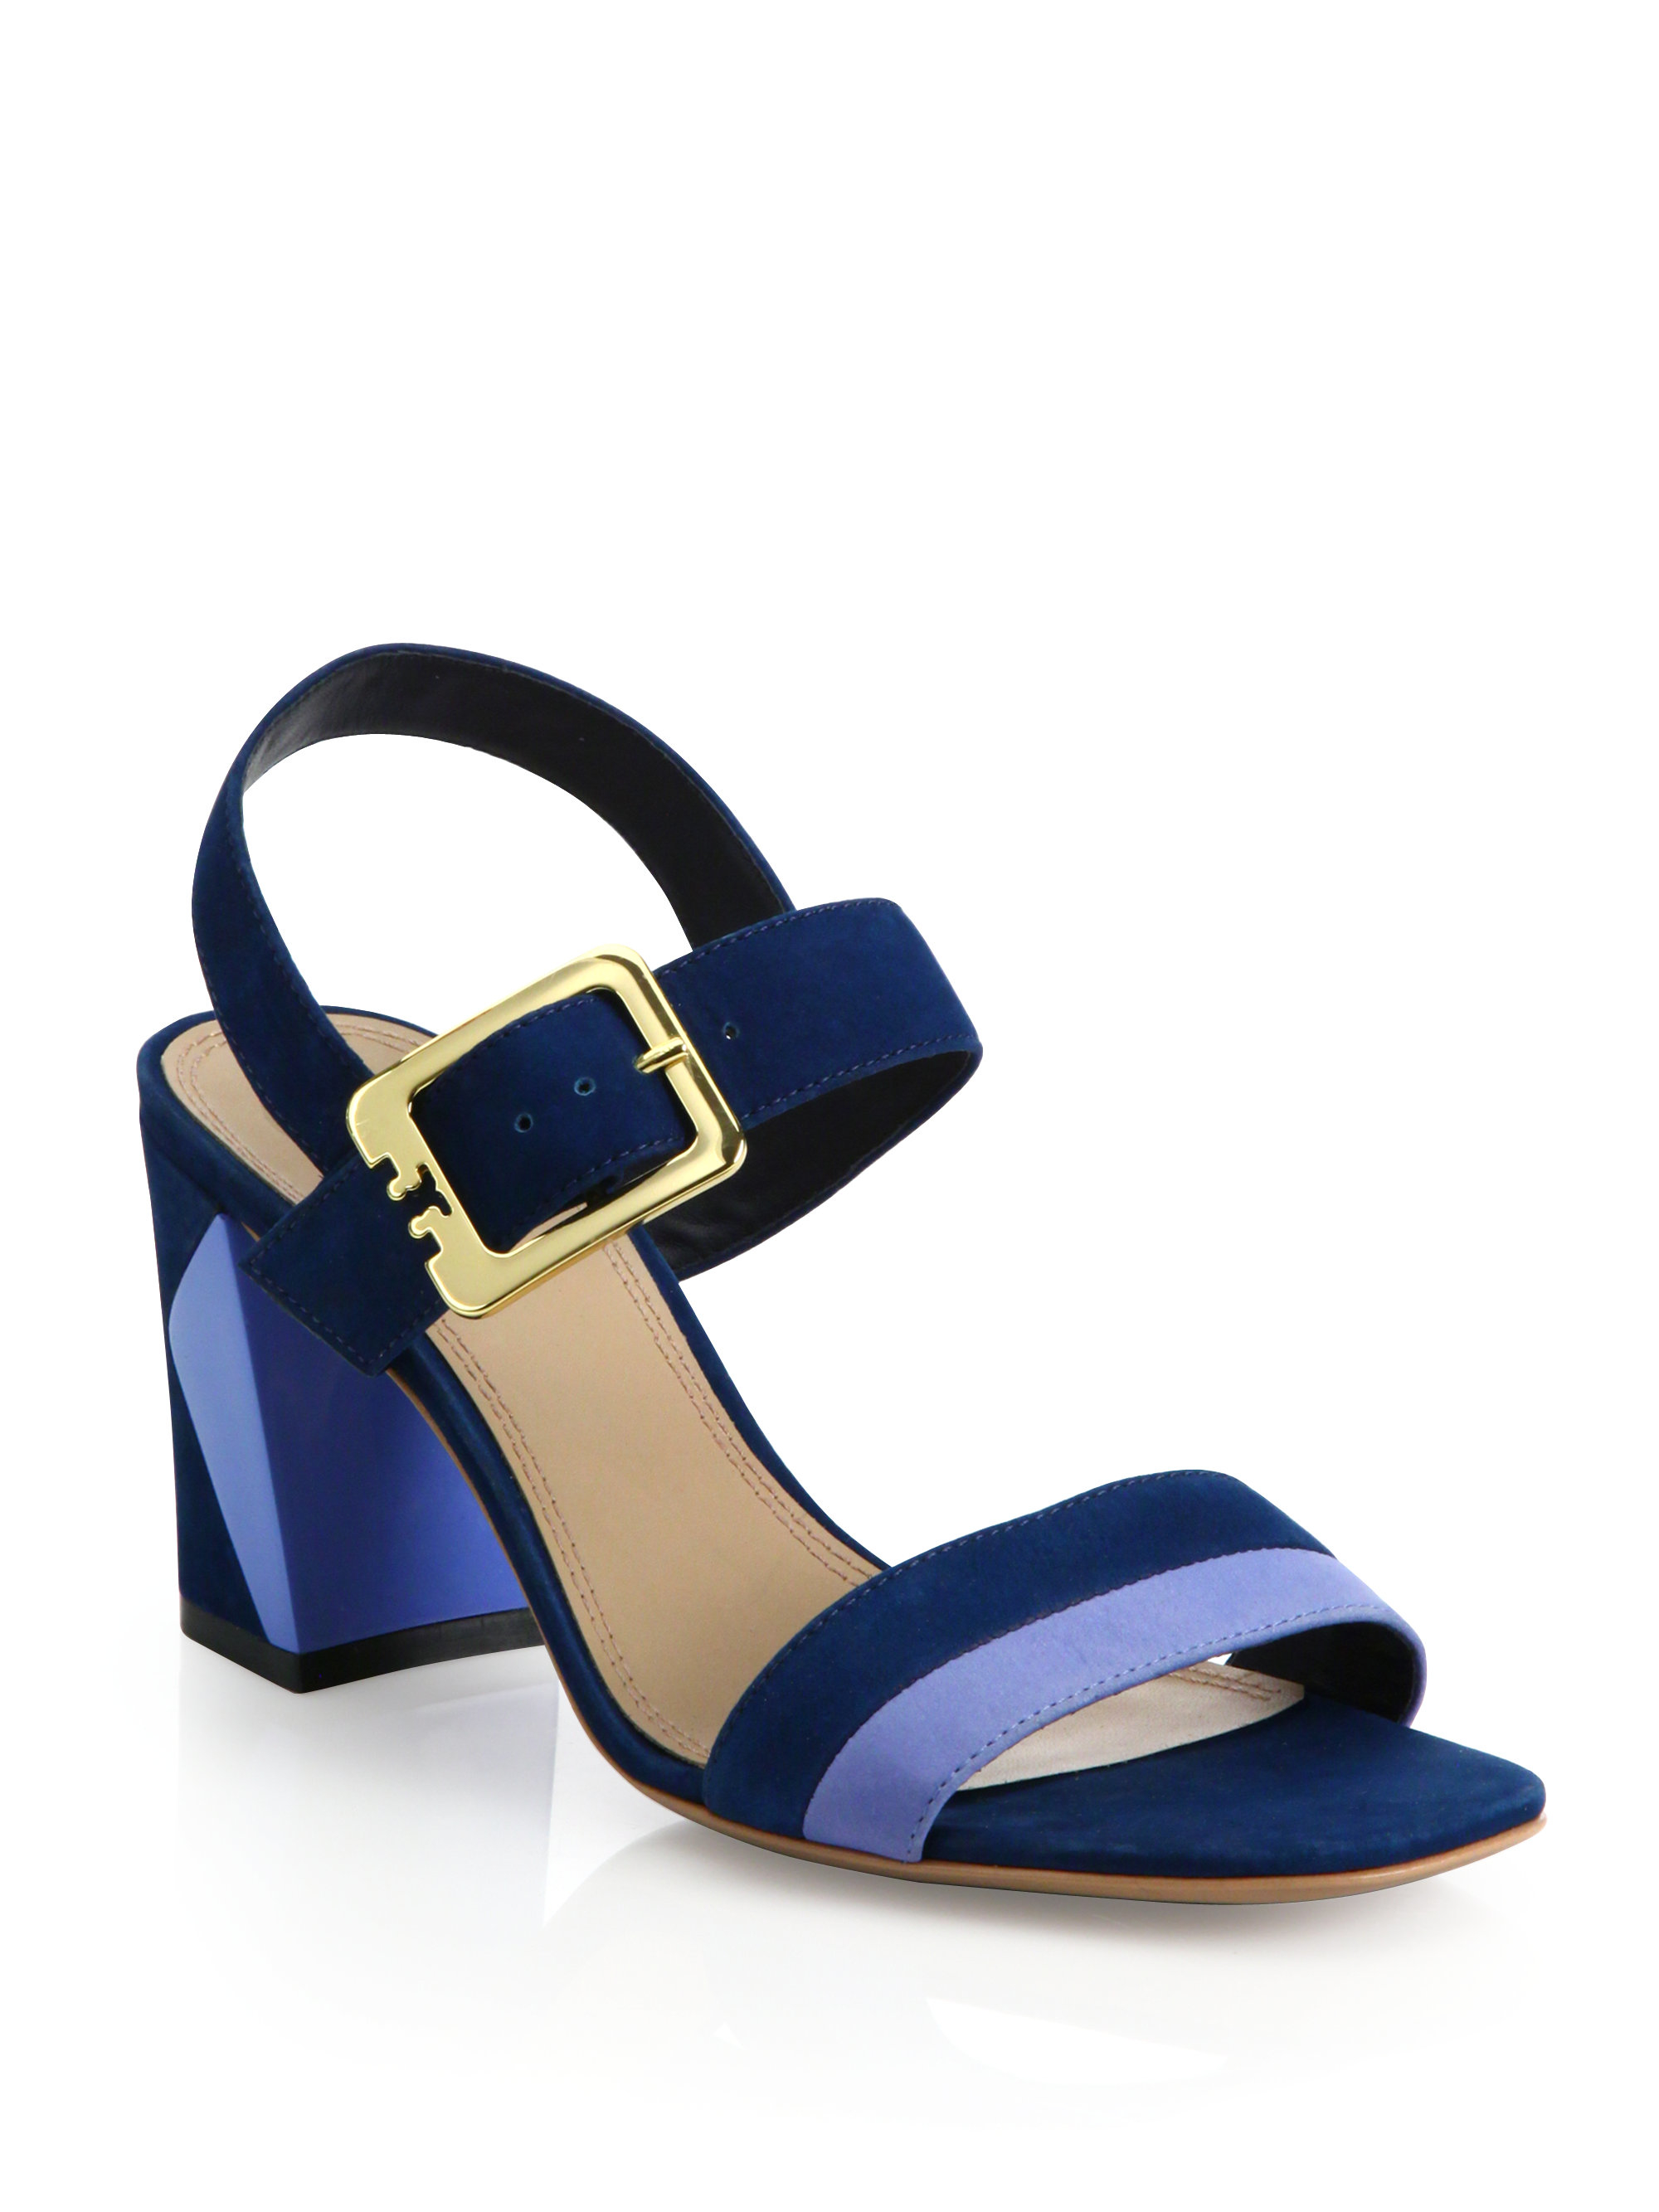 Tory Burch Leather Palermo Sandal in